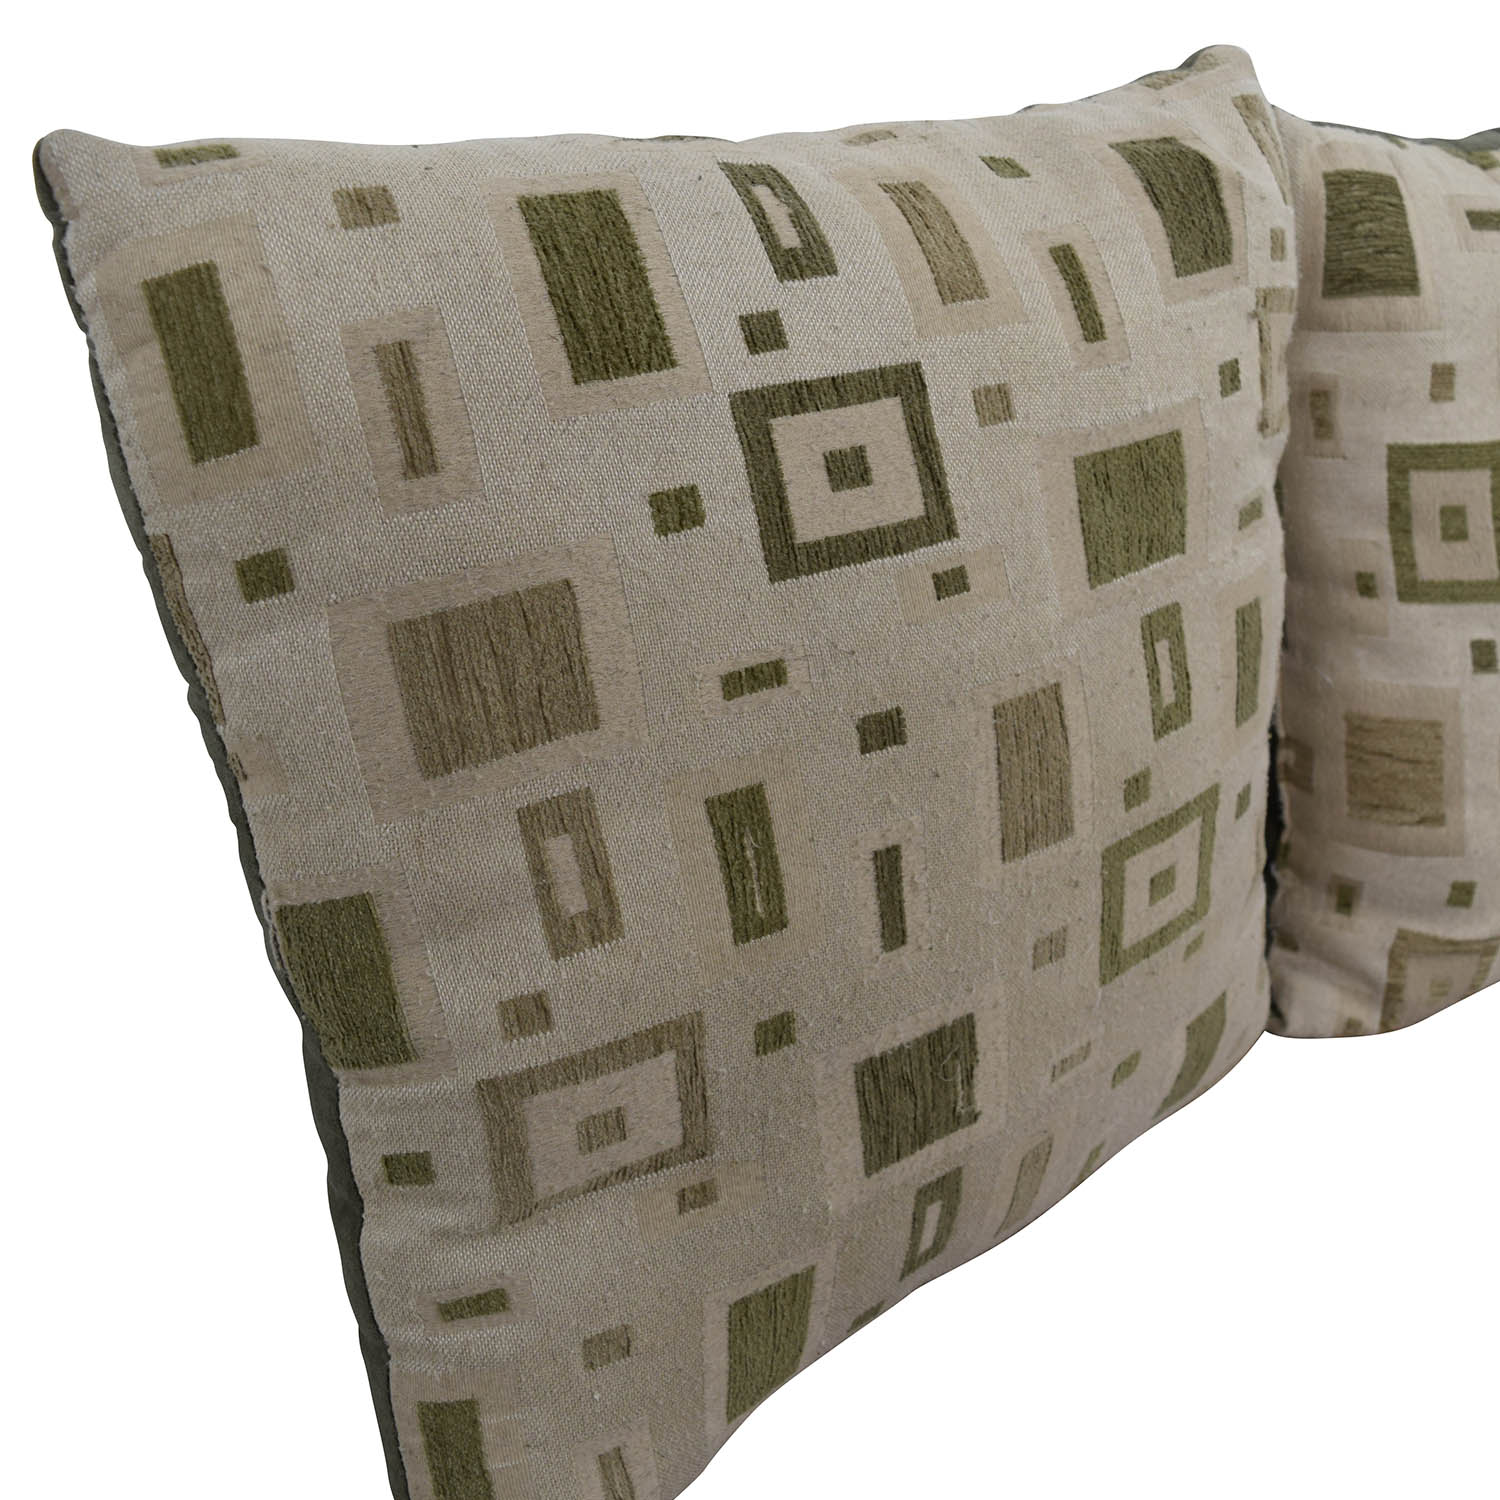 Multi-colored Square Design Tan and Green Toss Pillows